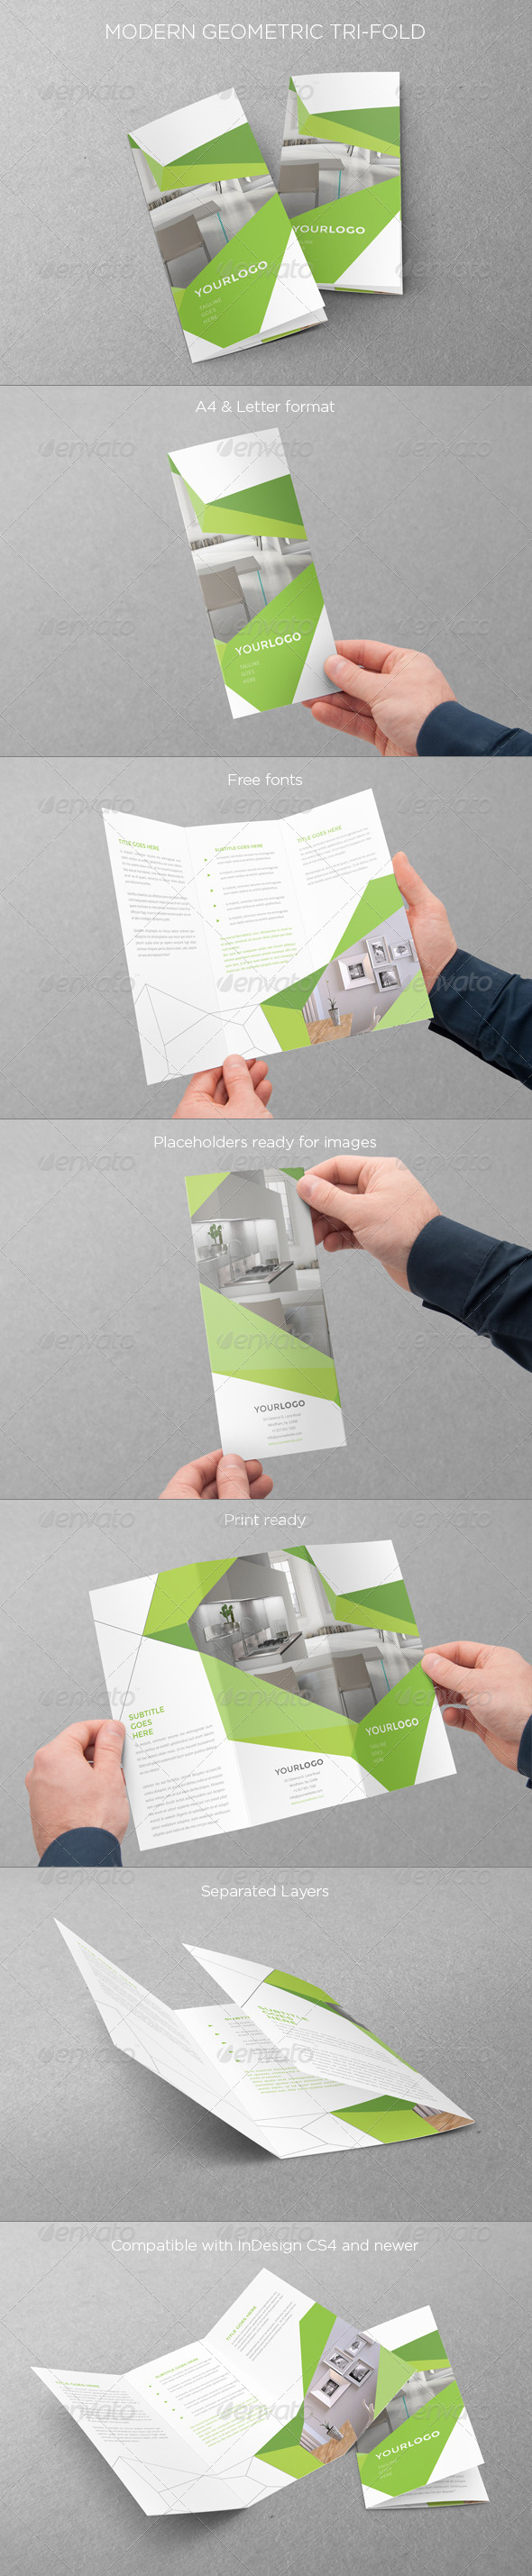 GraphicRiver Modern Geometric Trifold 7779900